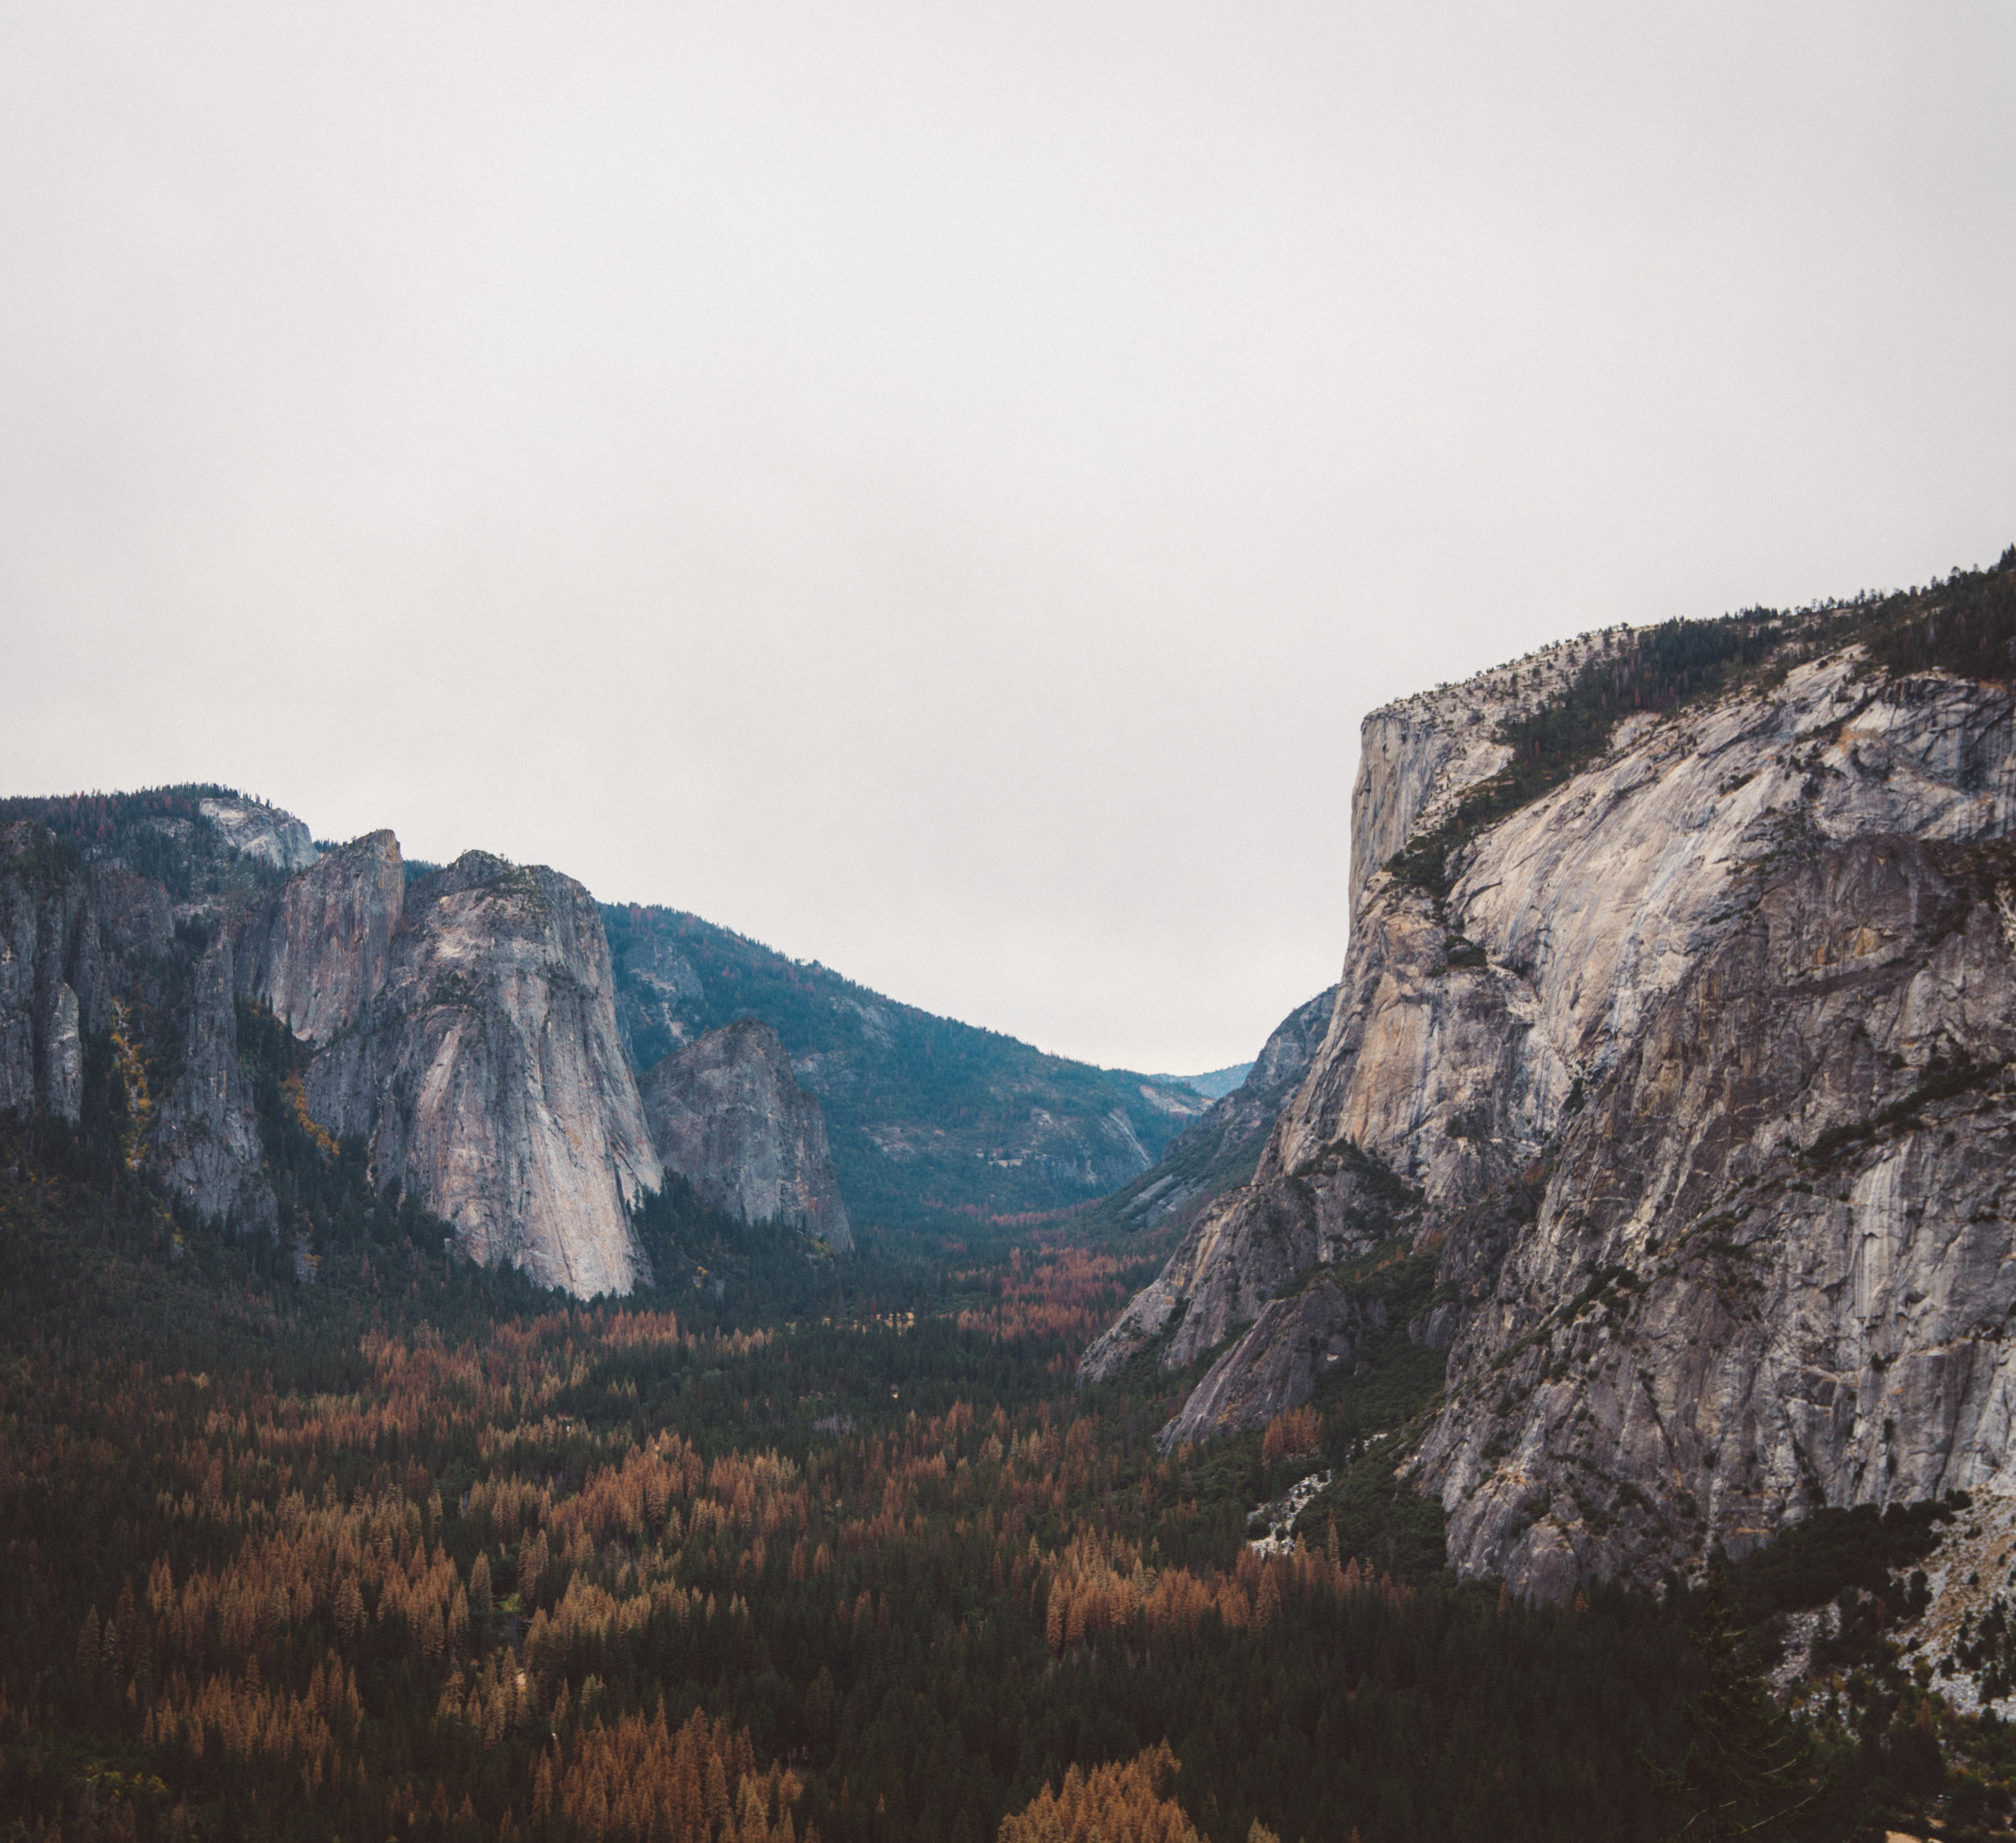 Yosemite Valley from along the 4 Mile Trail.